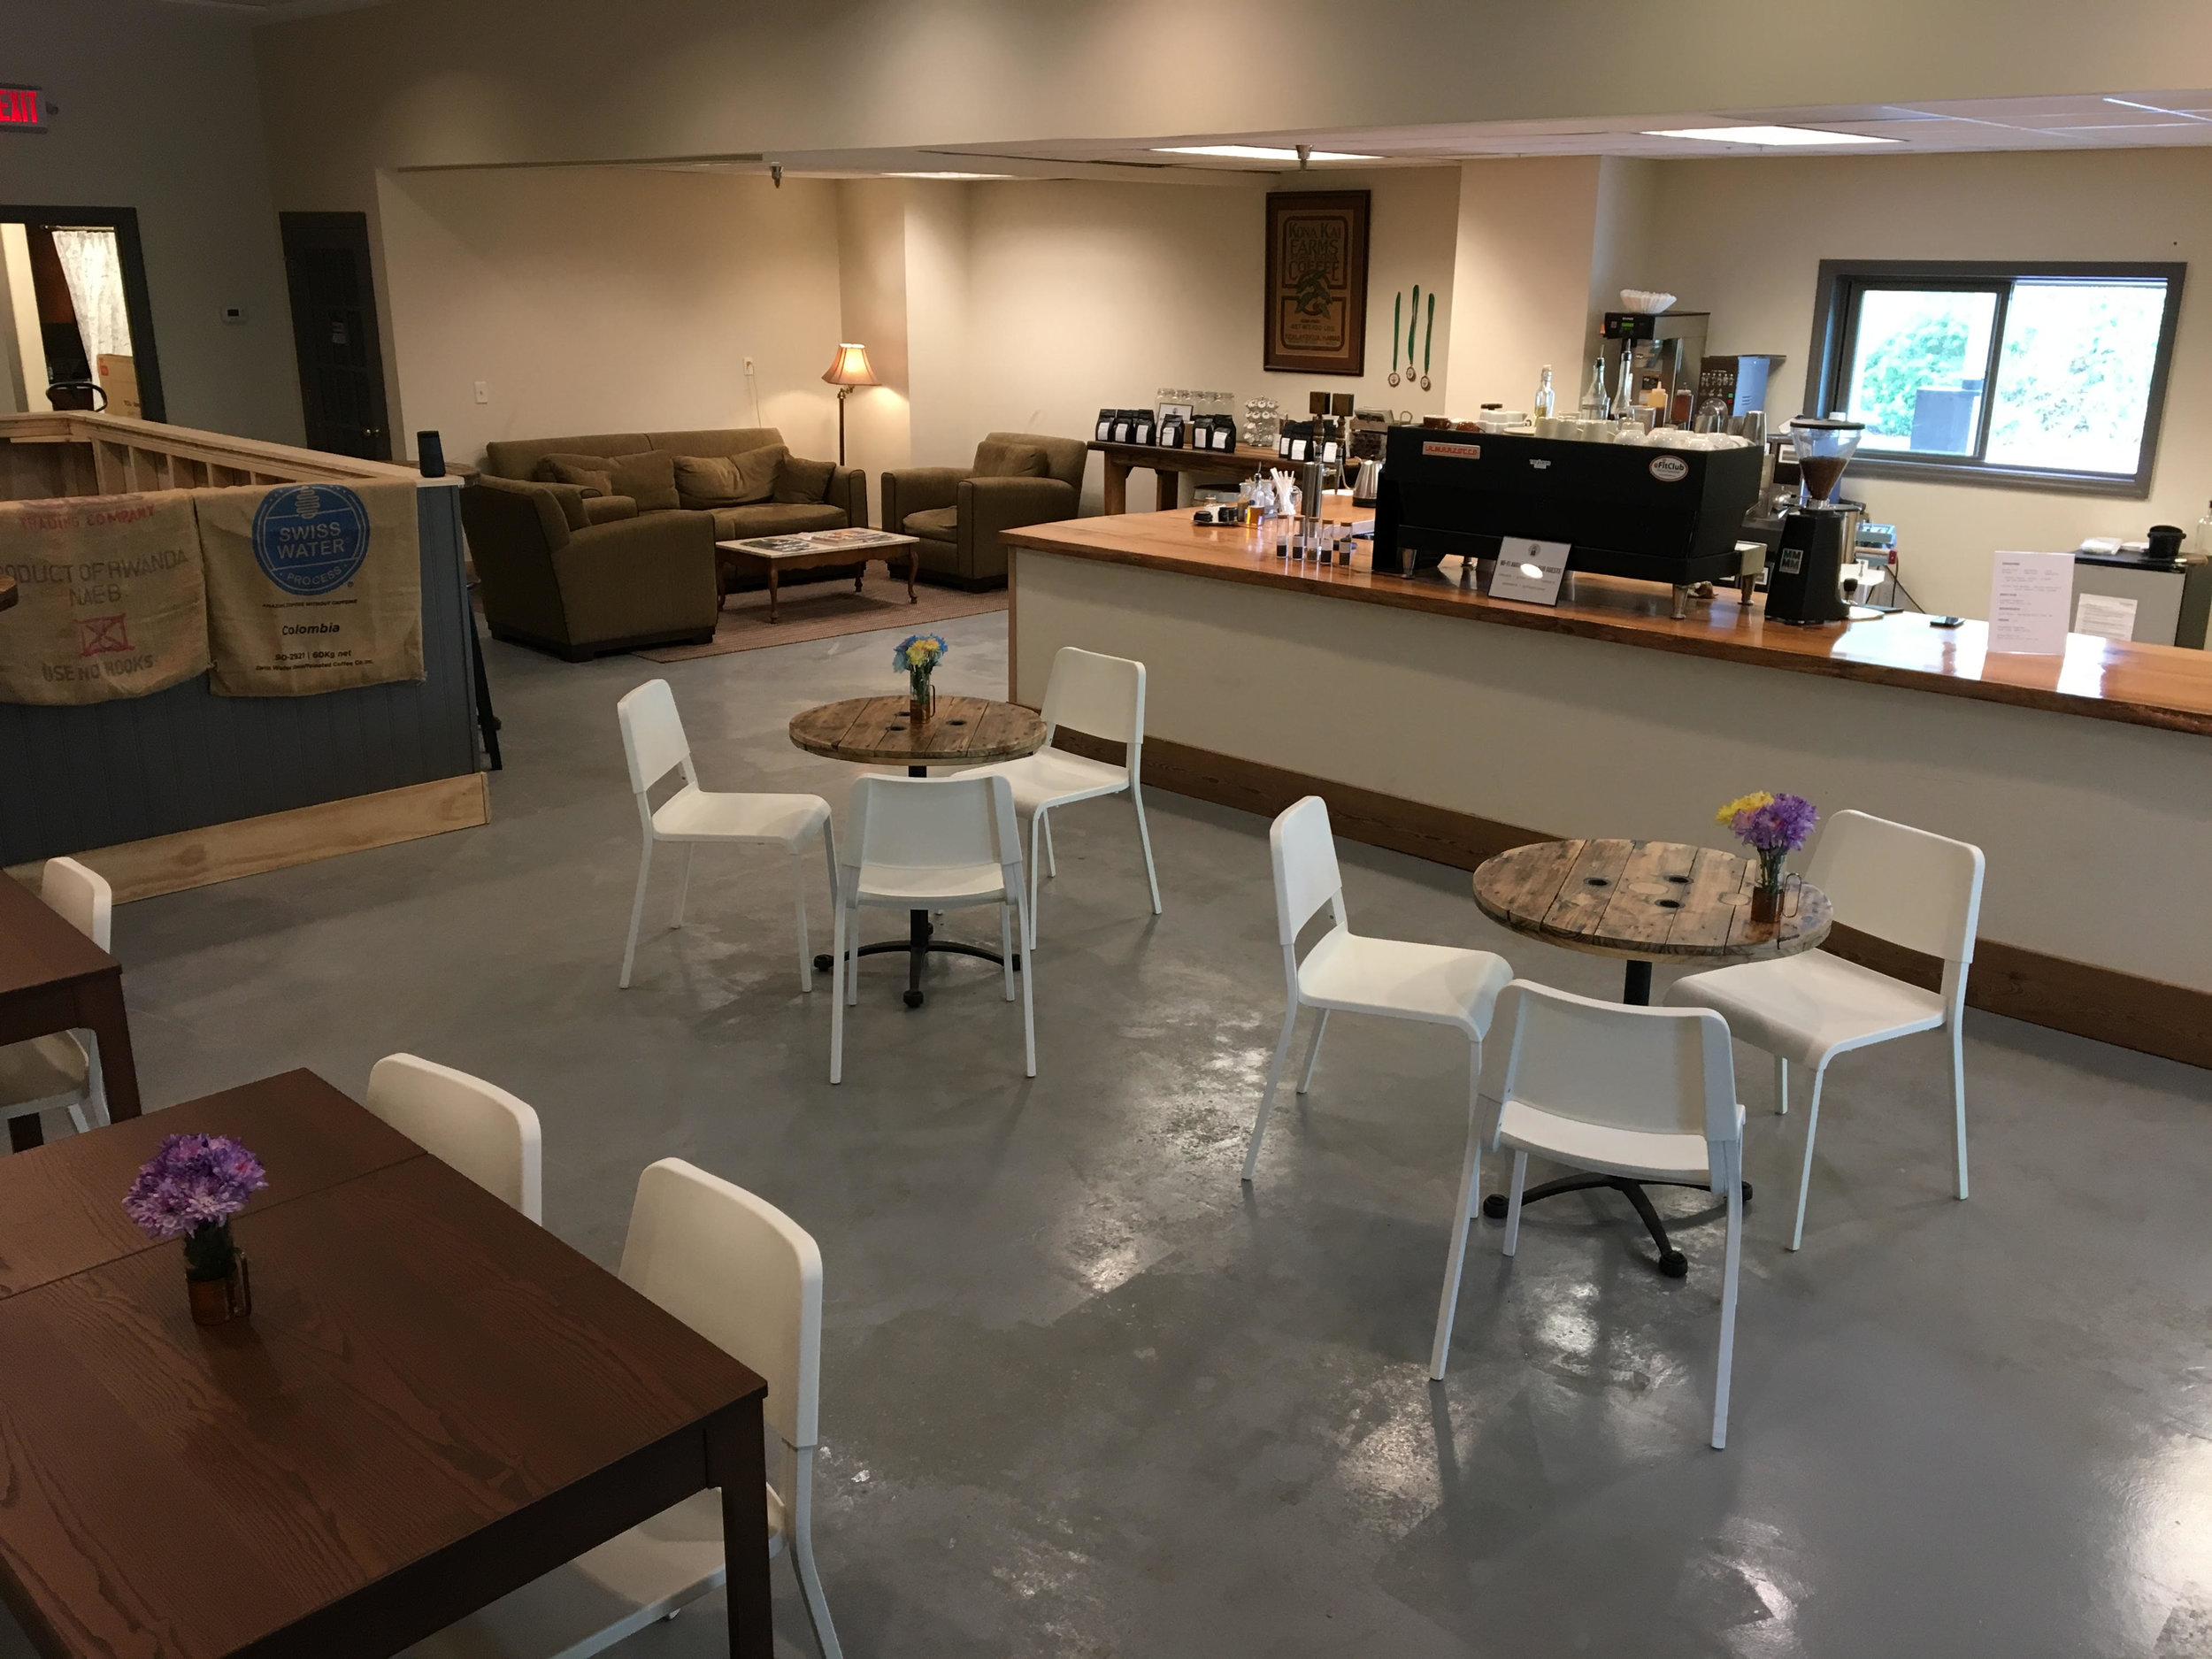 VISIT OUR NEW SHOP, LOCATED AT 1 SHERINGTON DRIVE, SUITE J, BLUFFTON, SOUTH CAROLINA 29910   GIVE US A CALL AT 1-843-368-3348